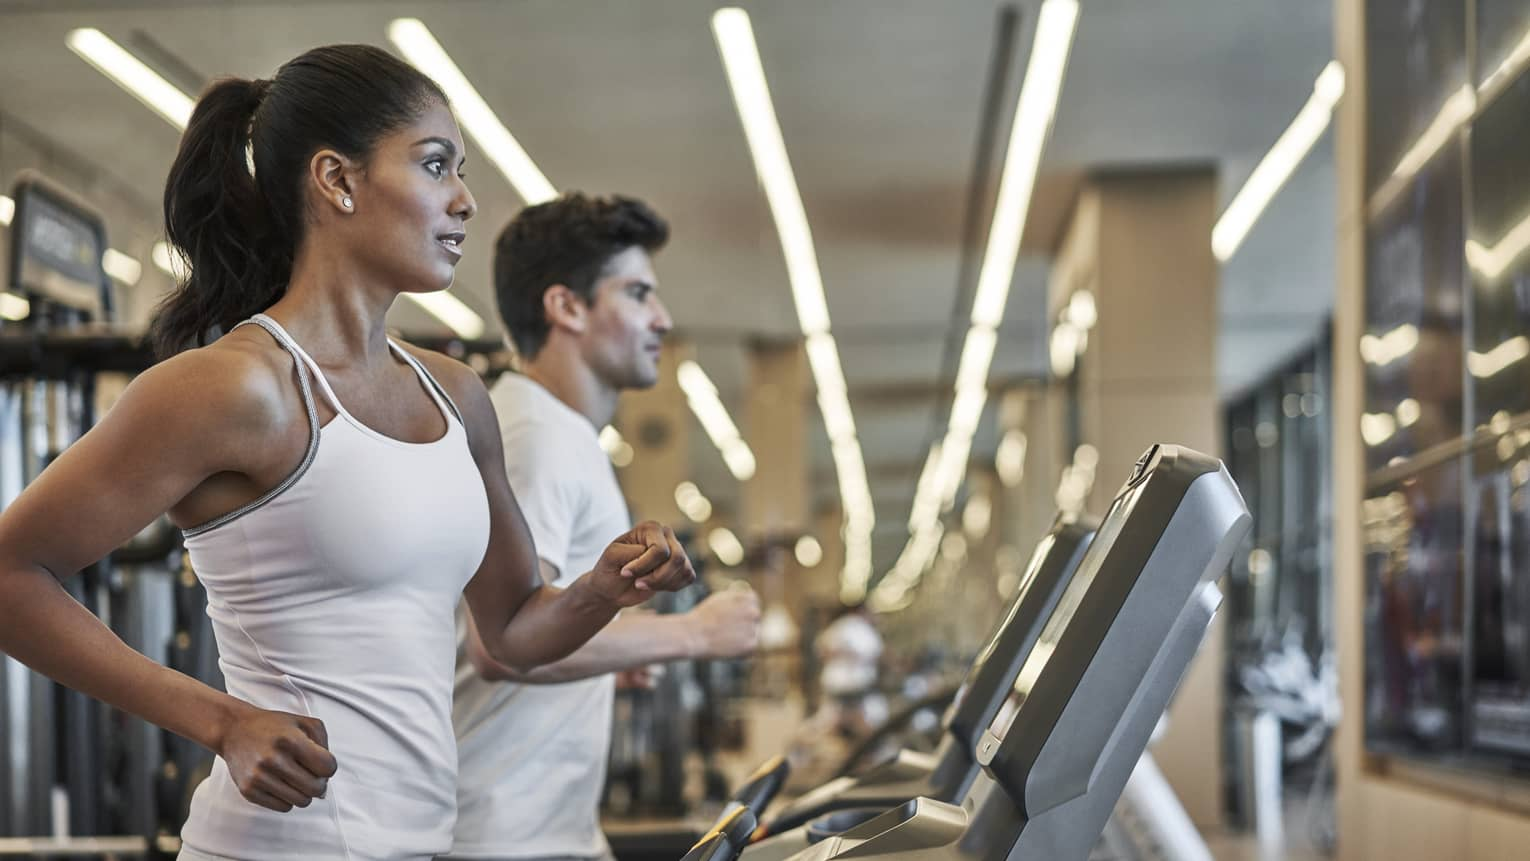 A woman and man, both dressed in all white run on indoor treadmills side by side at the four seasons philadelphia fitness centre.